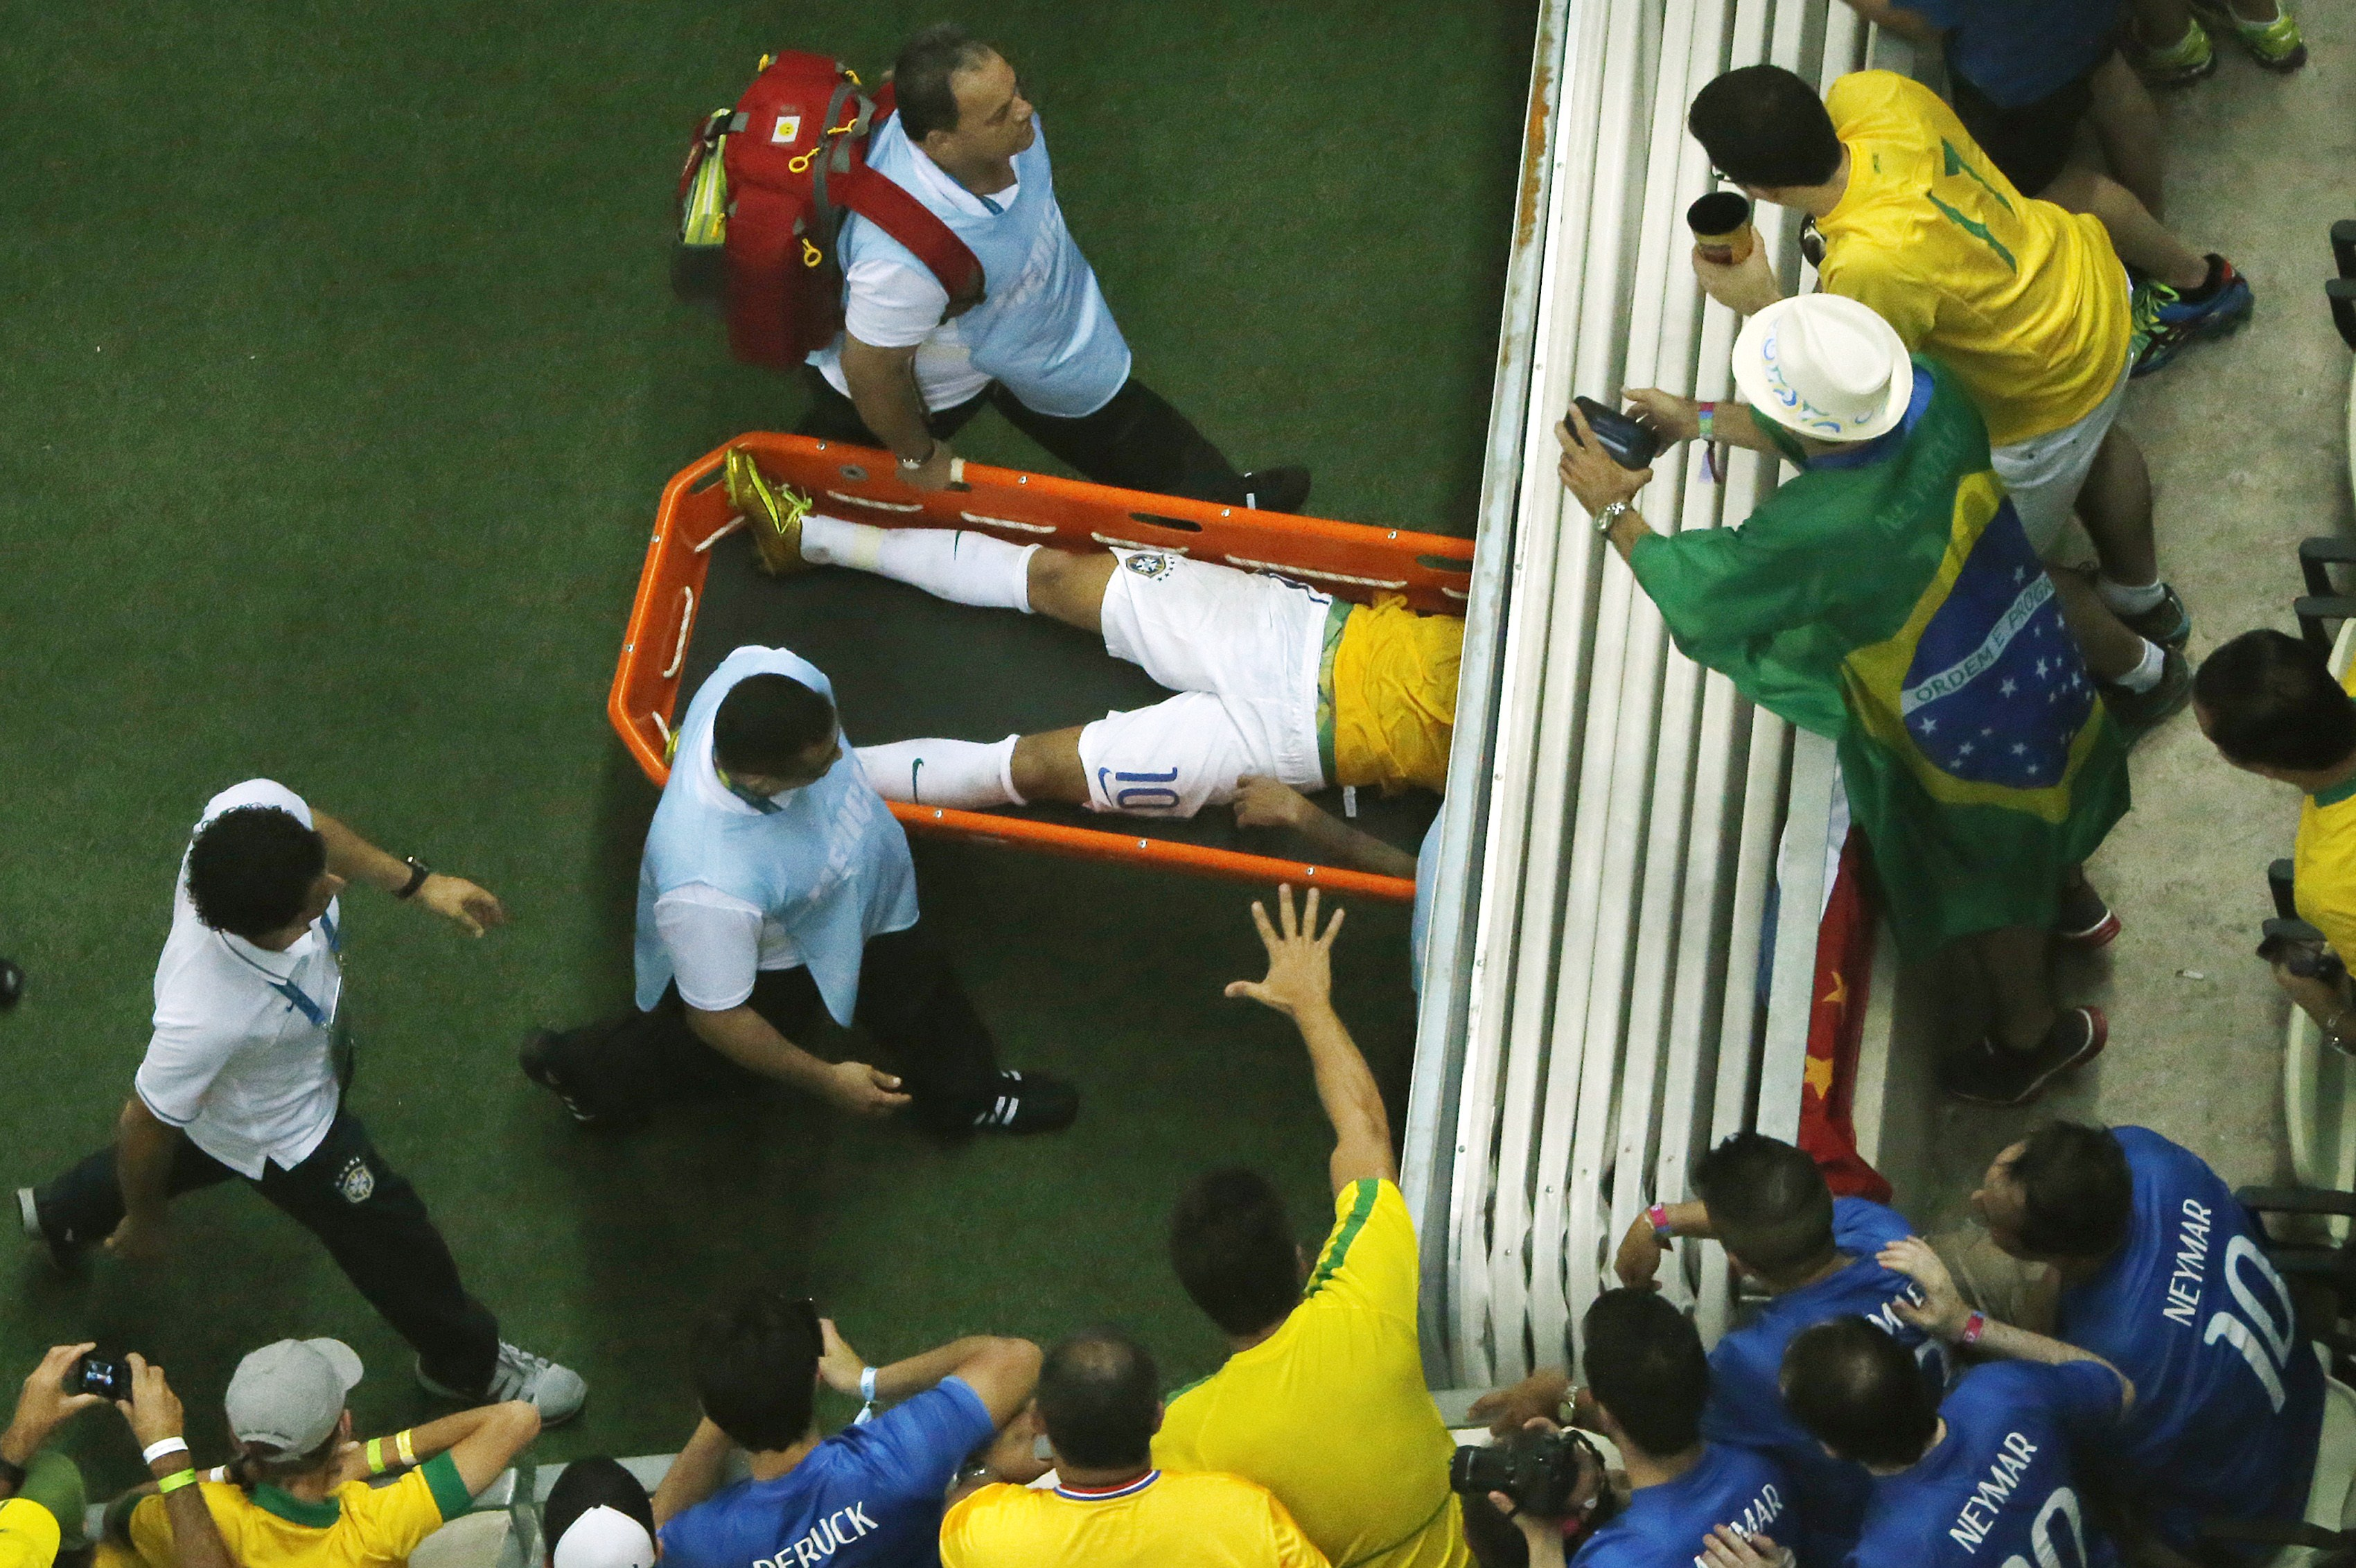 July 4, 2014. Fans react as Brazil's forward Neymar is carried off the pitch on a stretcher after being injured during the quarter-final football match between Brazil and Colombia at the Castelao Stadium in Fortaleza, Brazil, during the 2014 FIFA World Cup